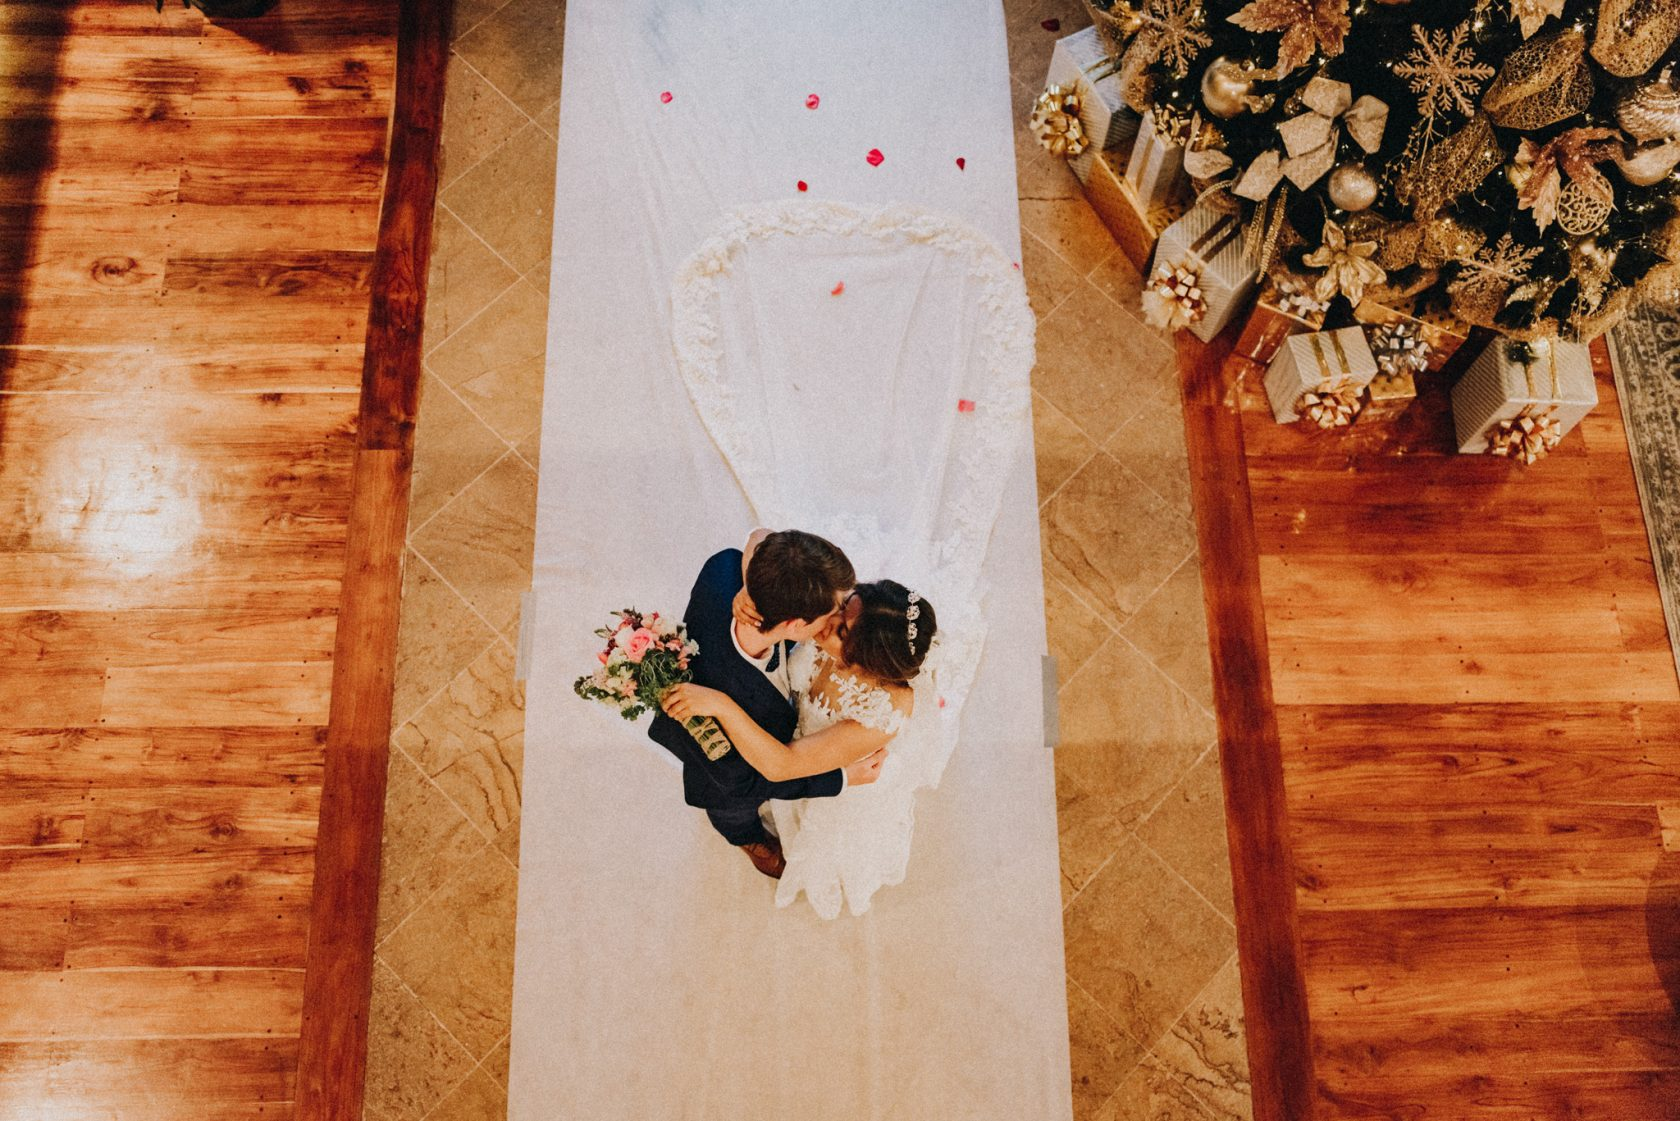 eliza-y-esteban-bodas-adventistas-hotel-visus-boutique-spa-cerritos-pereira-risaralda-jota-pardo-wedding-photographer